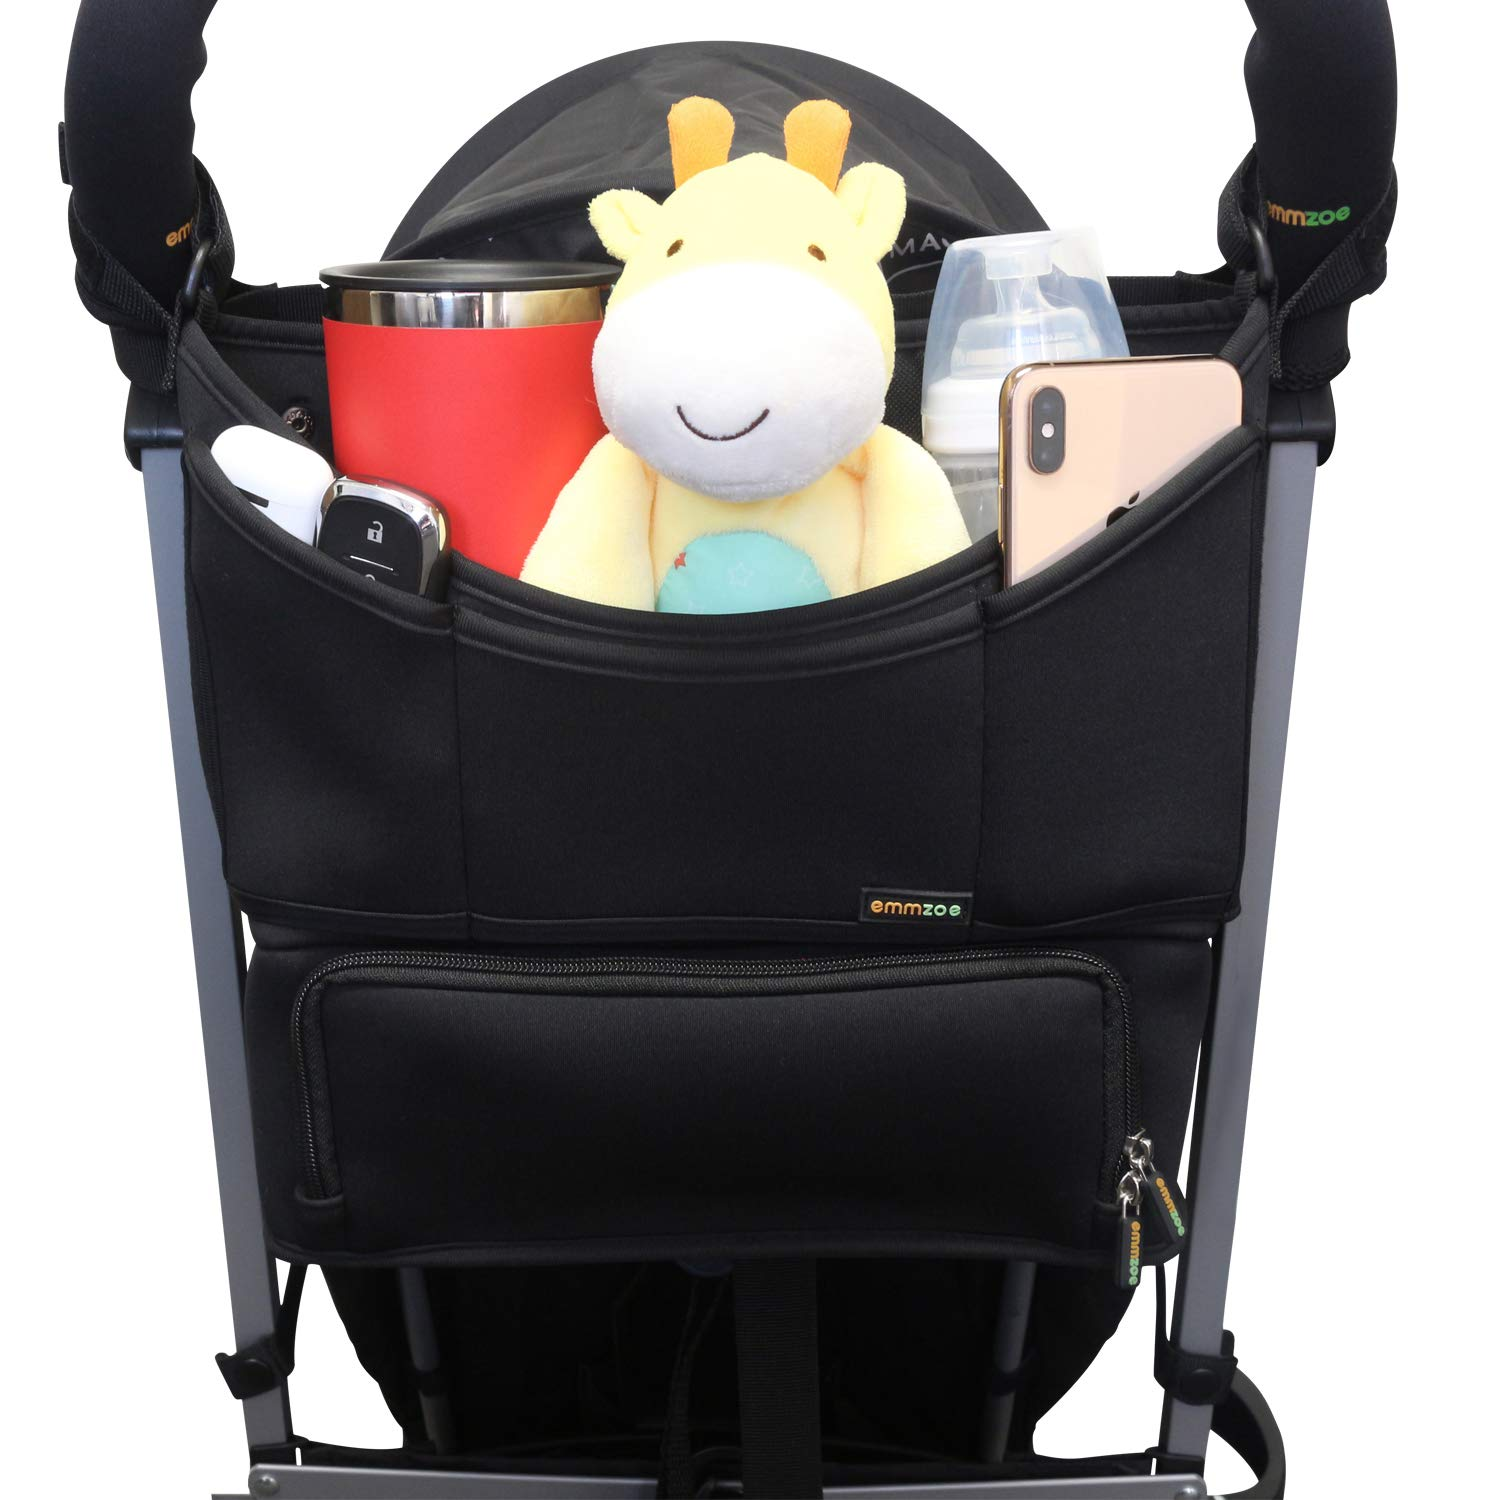 Emmzoe Universal Fit Parent Stroller Organizer - All-in-One Solution with Insulated Compartment for Food and Drinks - Holds Diapers, Wipes, Toys